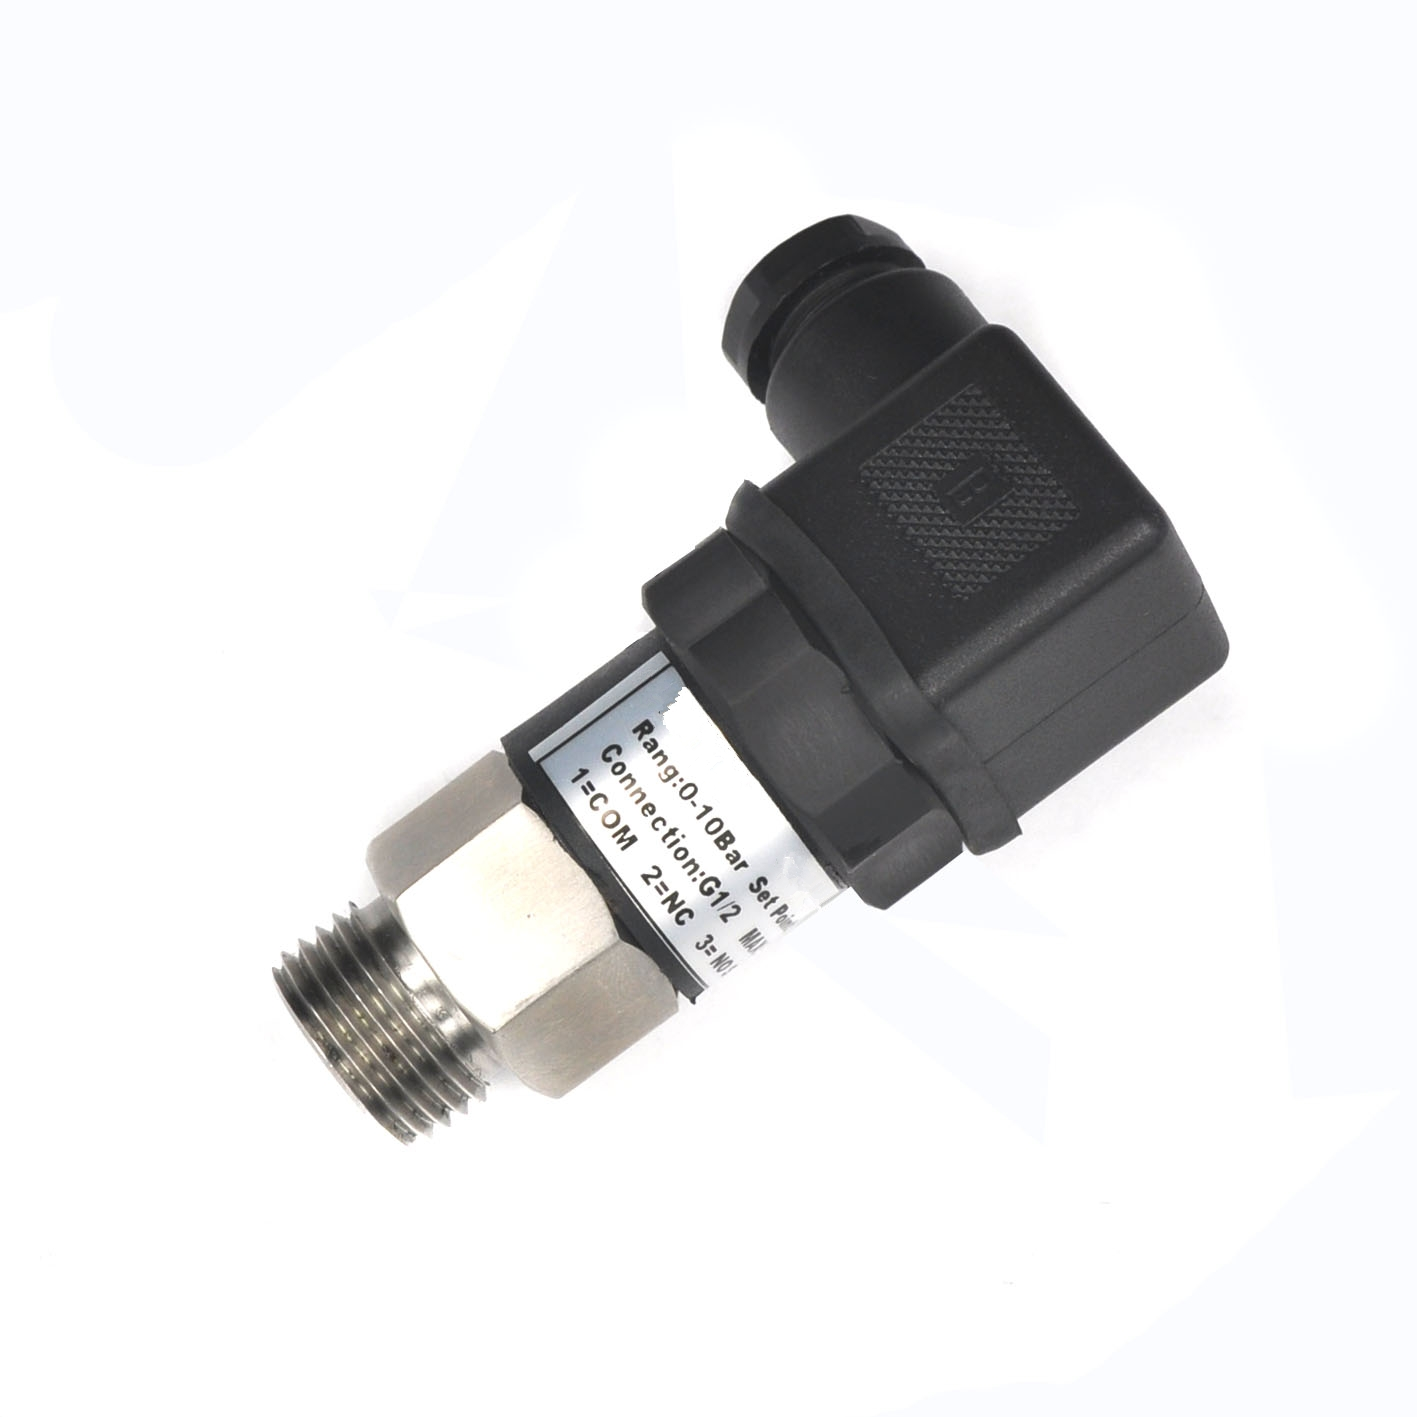 Md-s700 mechanical pressure switch